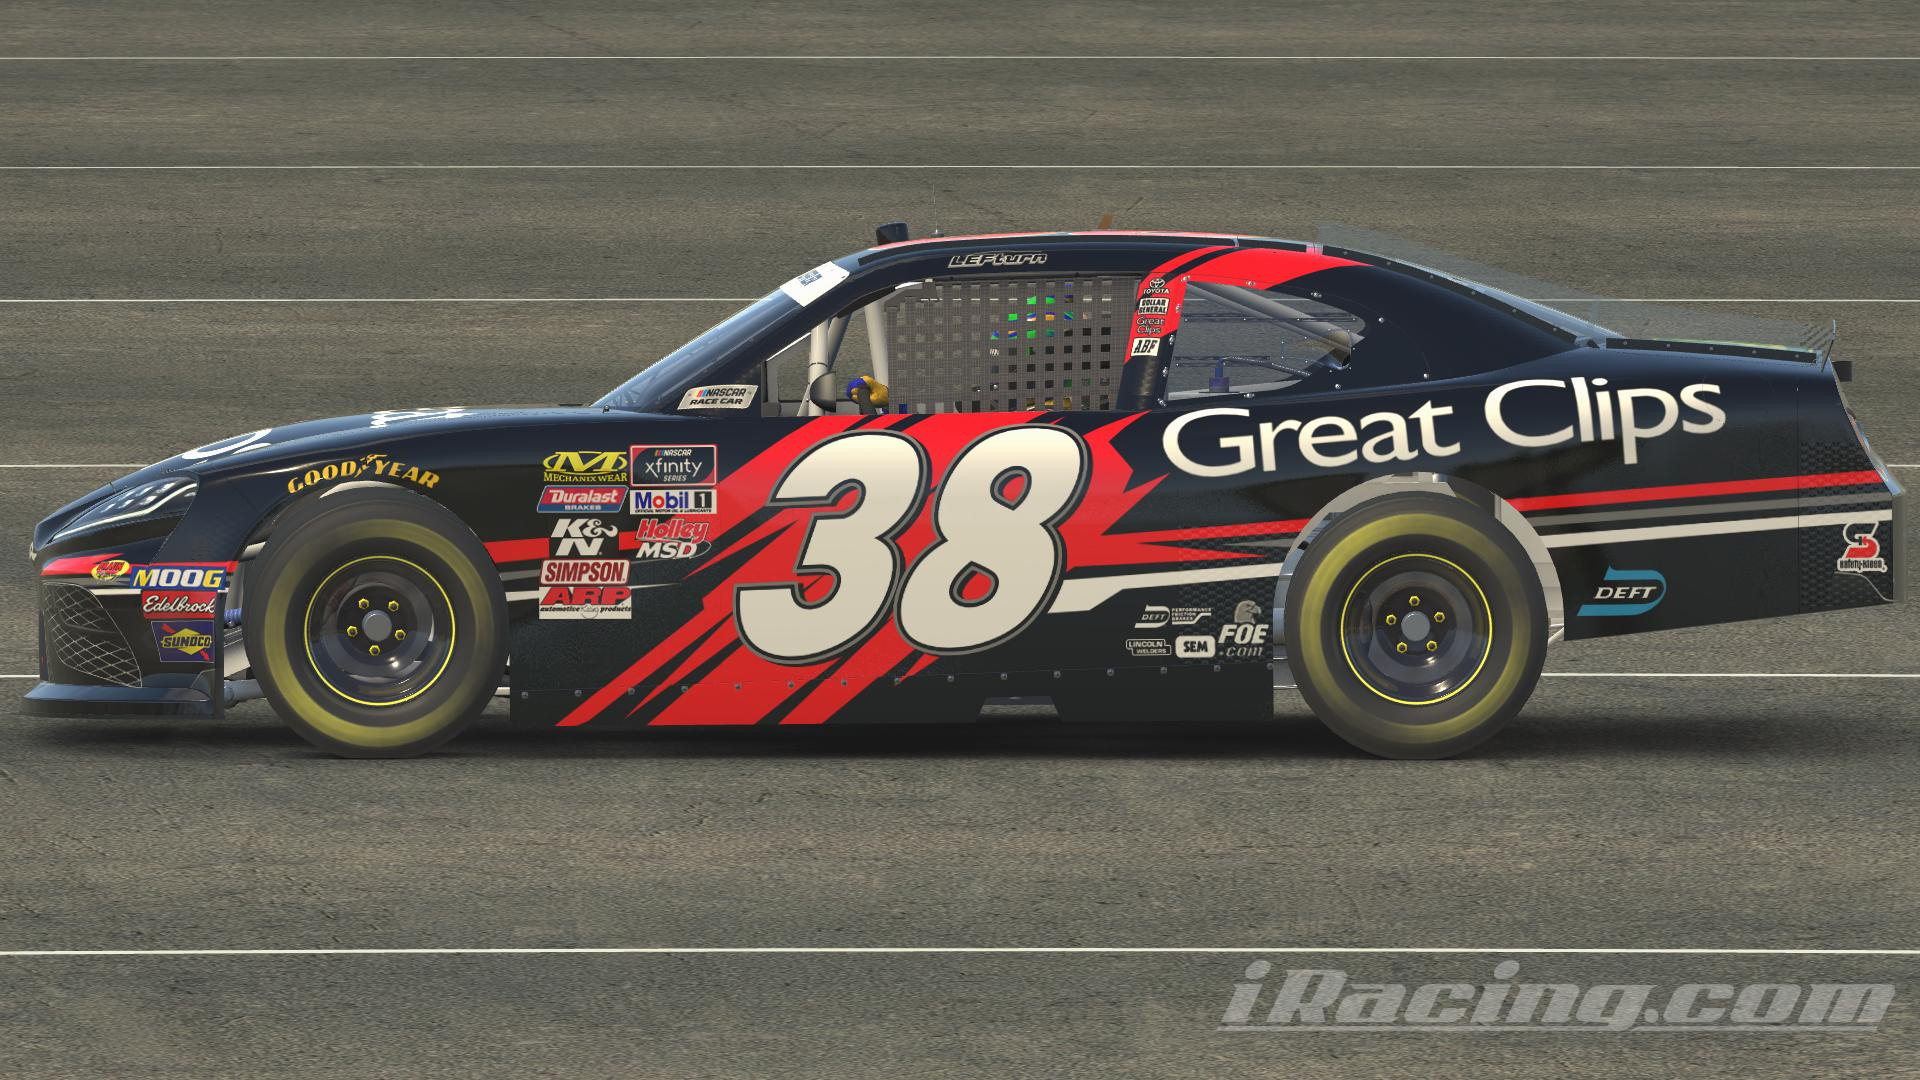 Preview of Jason Leffler Great Clips 2010 by Matt Muir